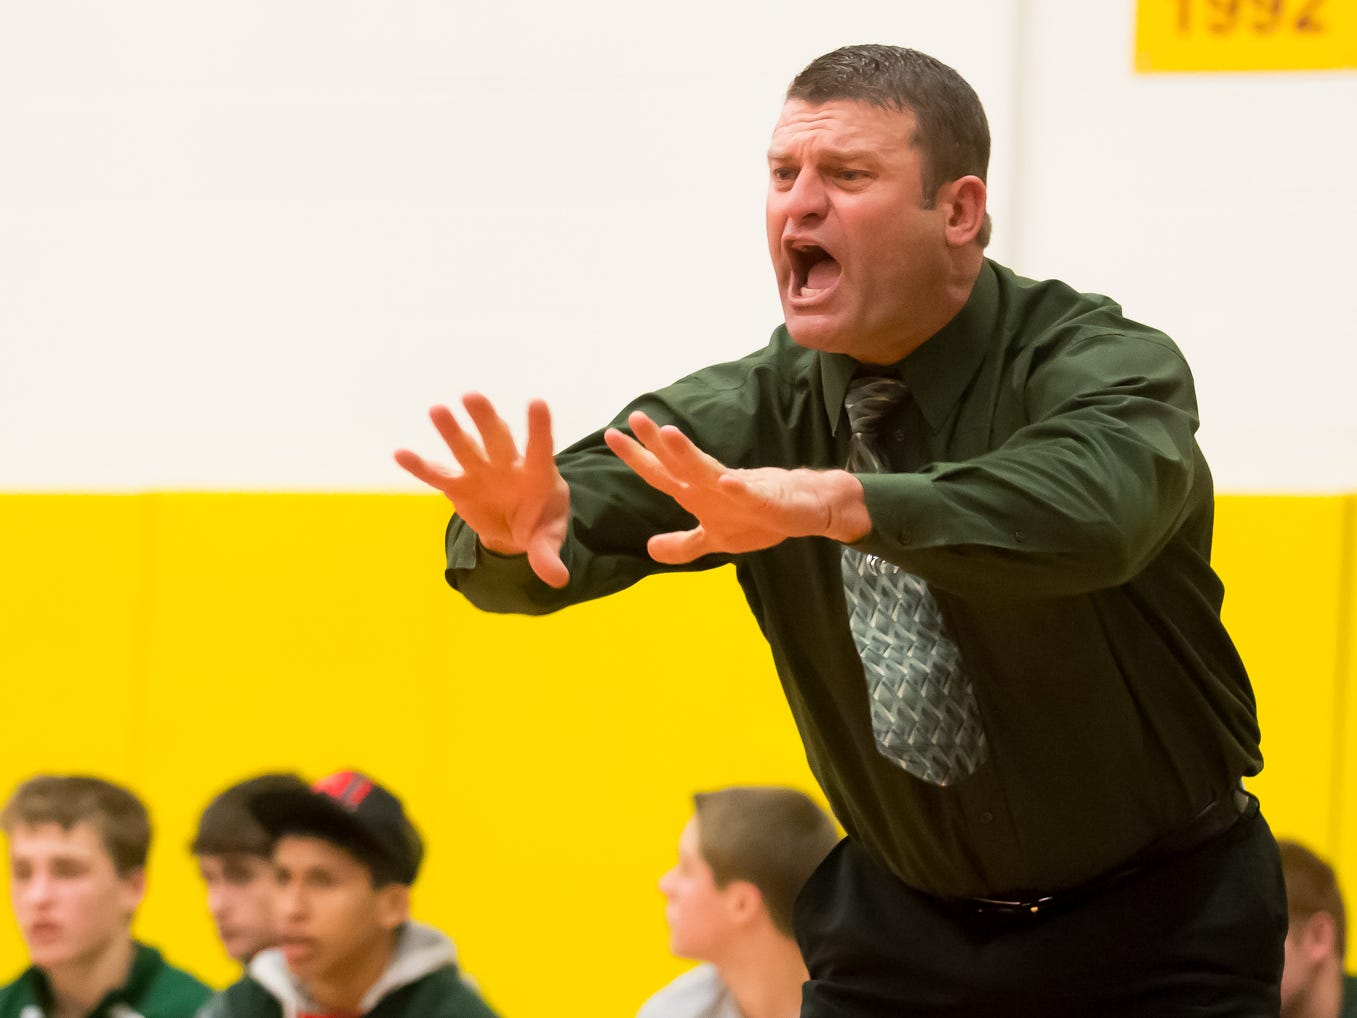 Brian Killion has resigned as the wrestling coach at Fossil Ridge High School.